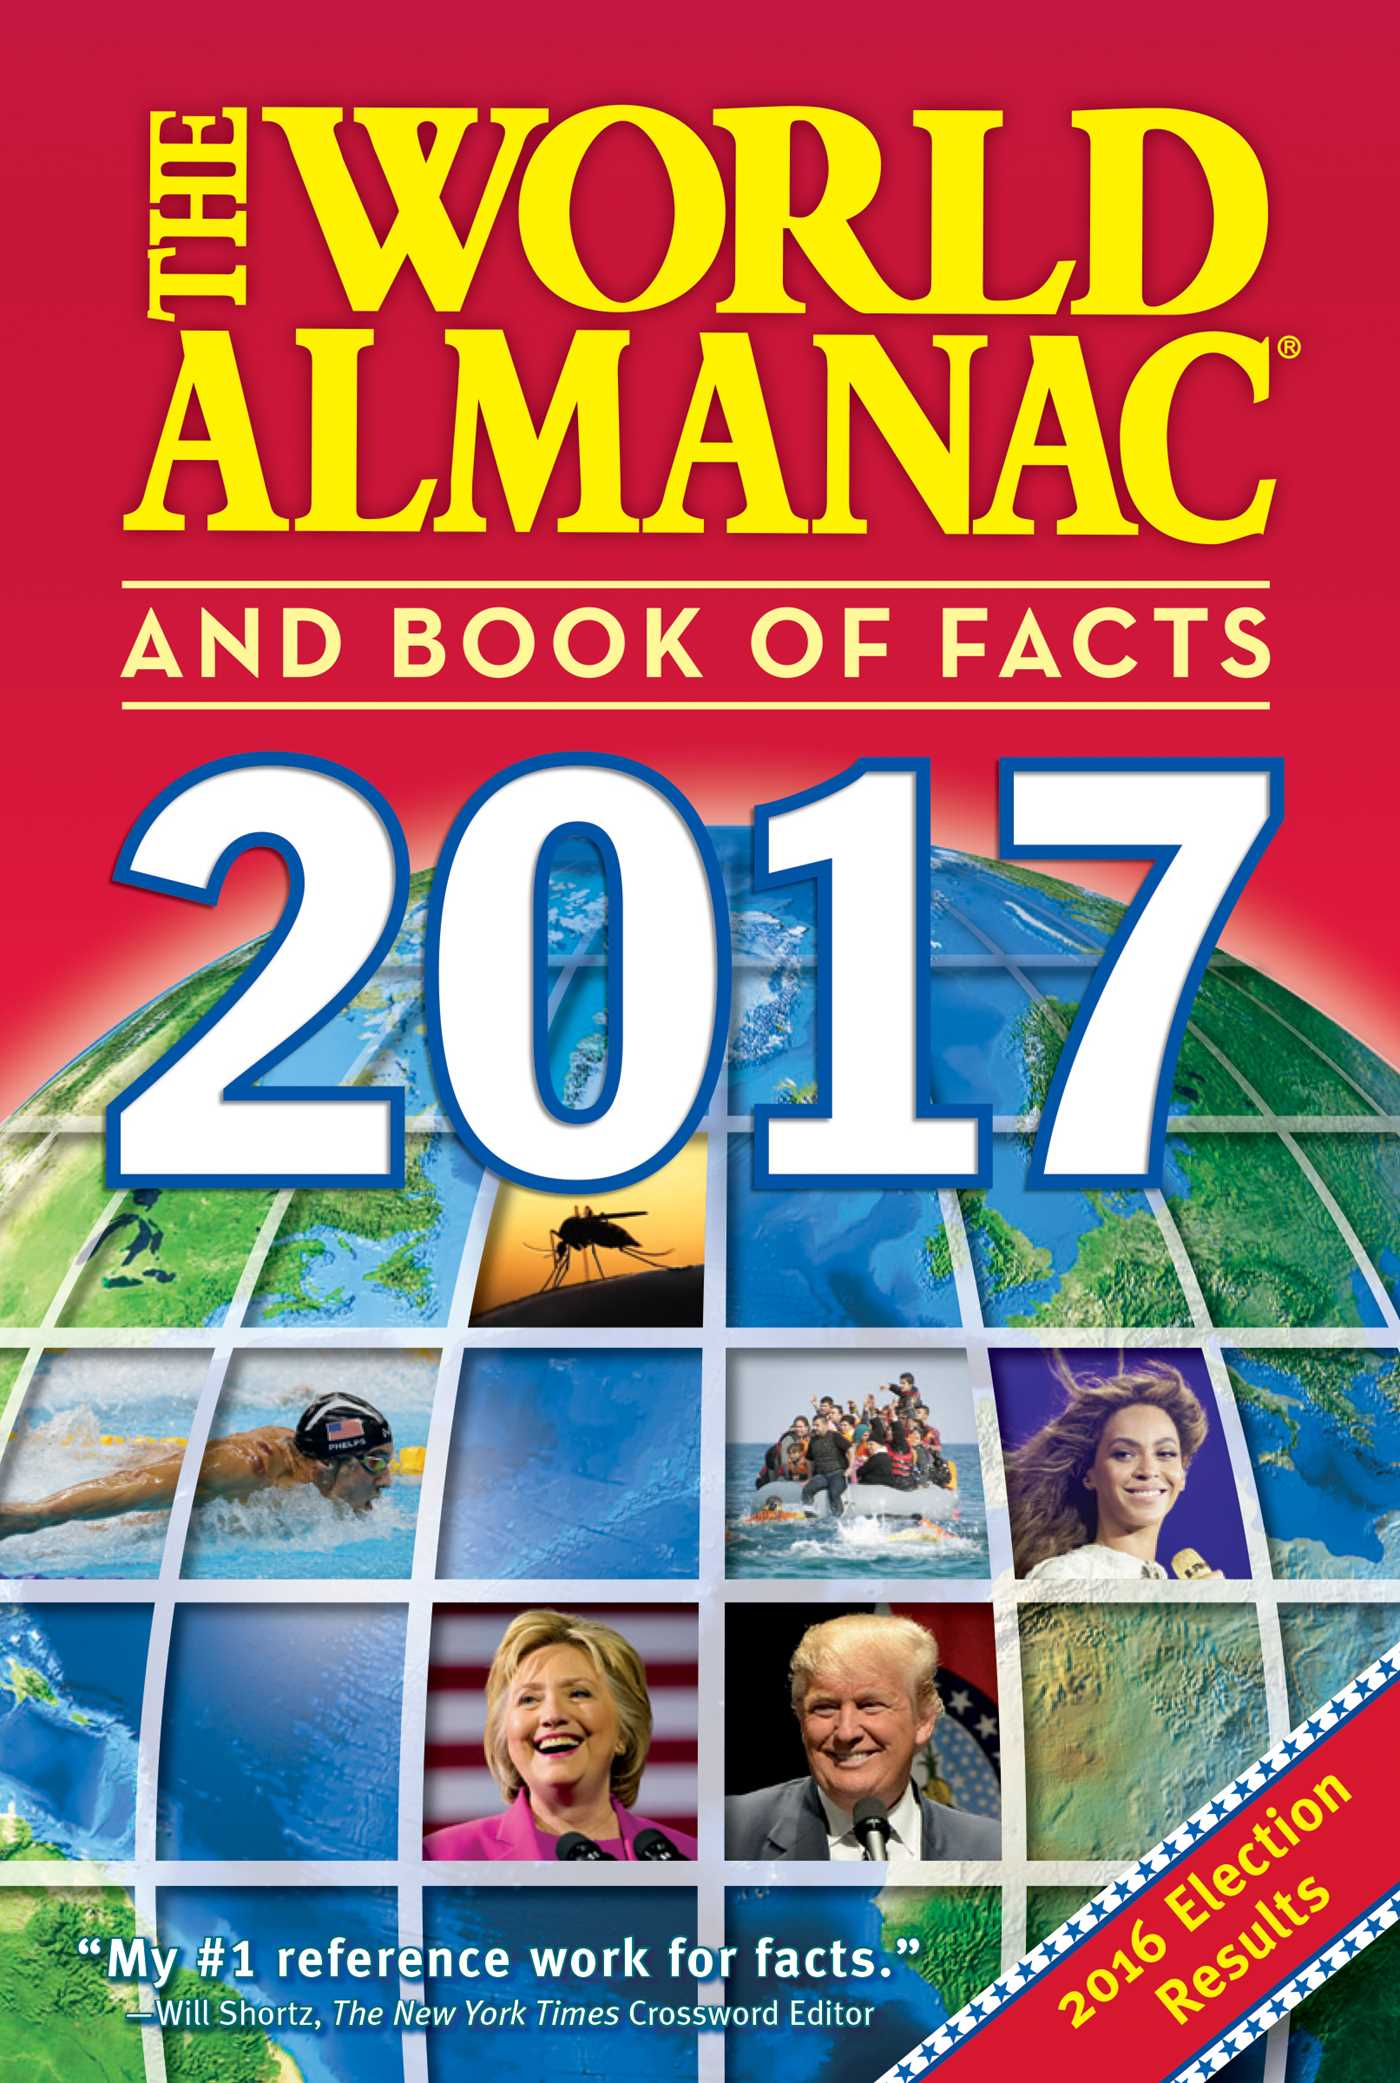 The world almanac and book of facts 2017 9781600572067 hr